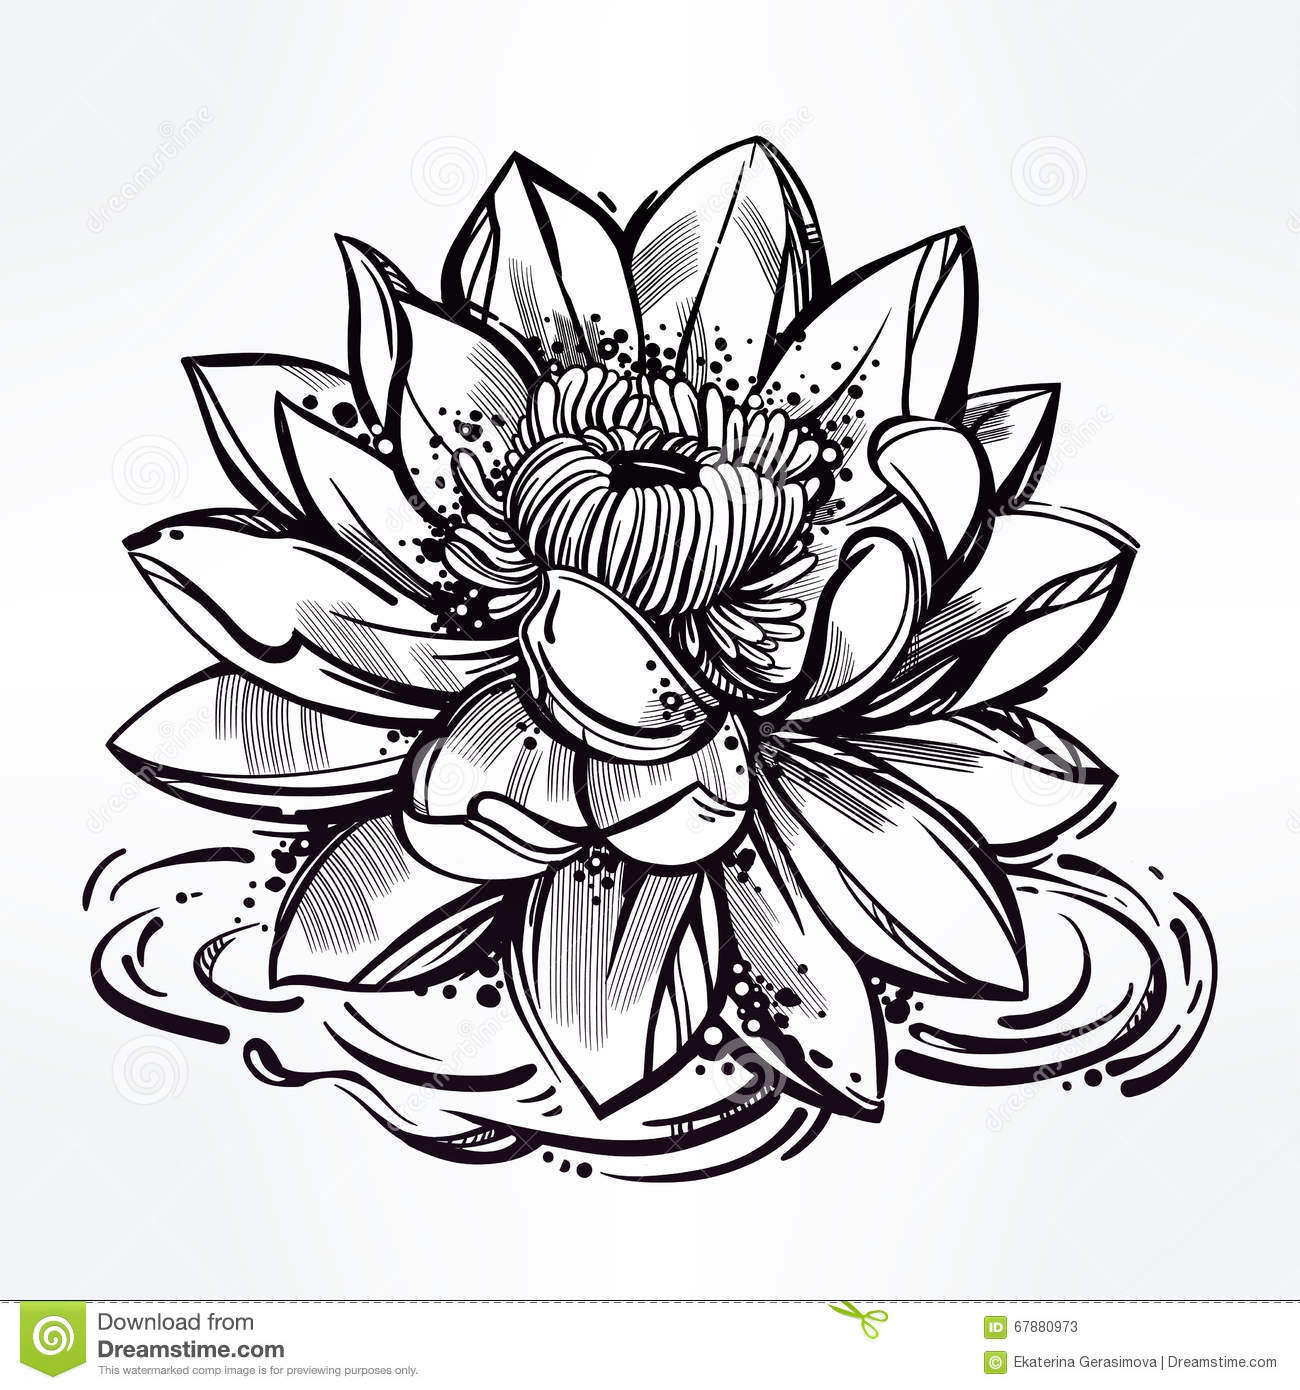 Line Drawing Of Lotus Flower : Sketch of lily lotus flower in linear style stock vector